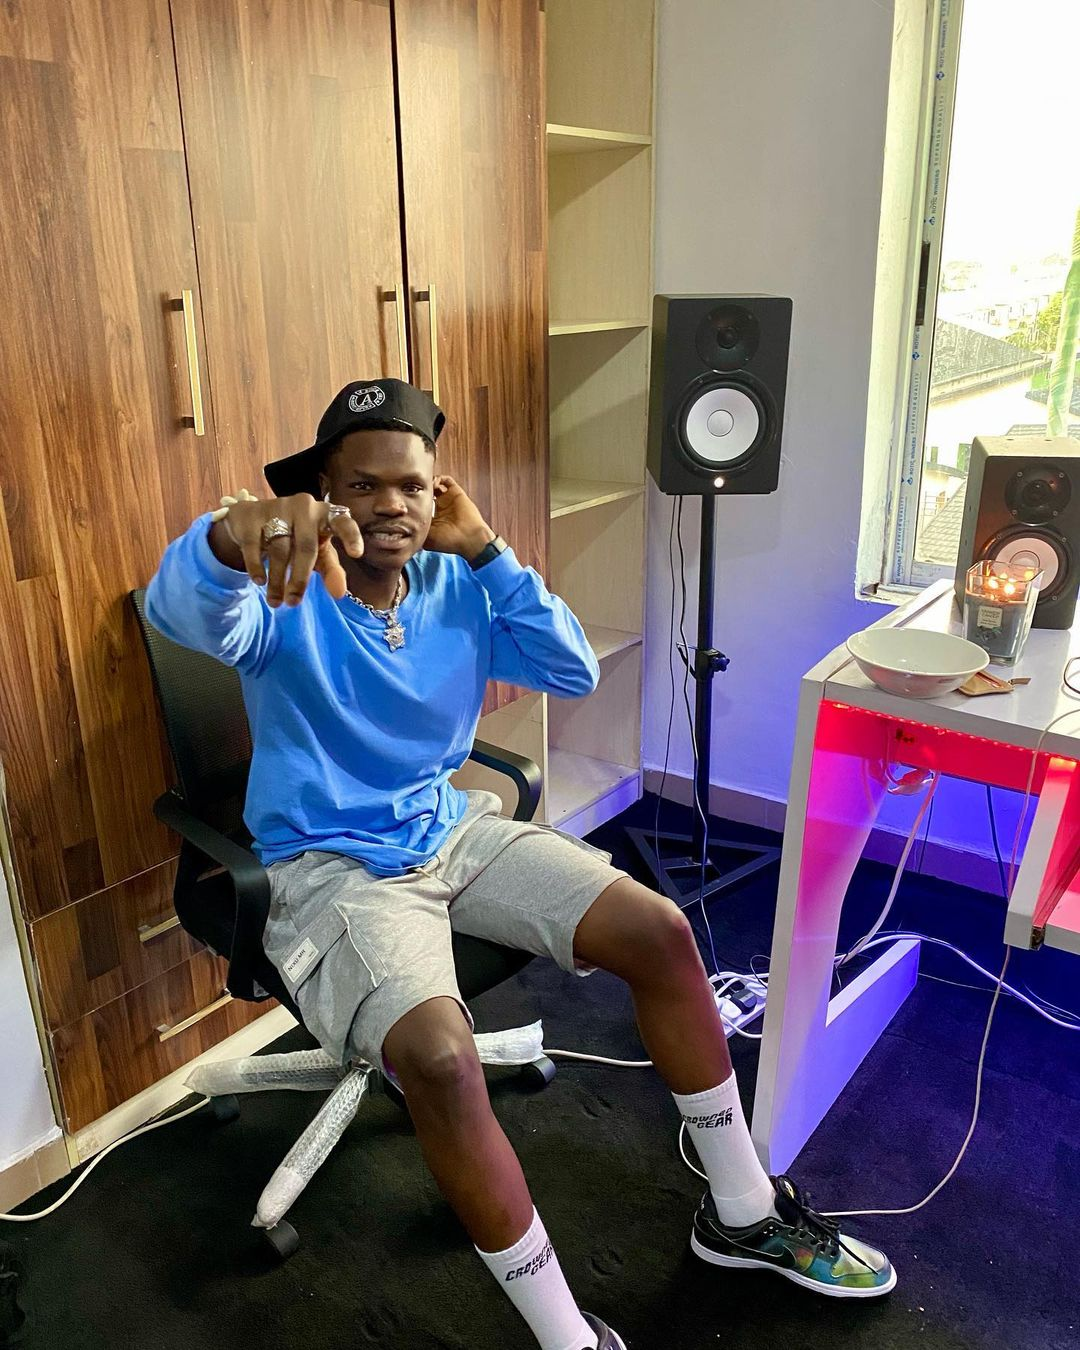 Singer, BadBoy Timz goes emotional after making it to the BILLBOARD Top Thriller charts.